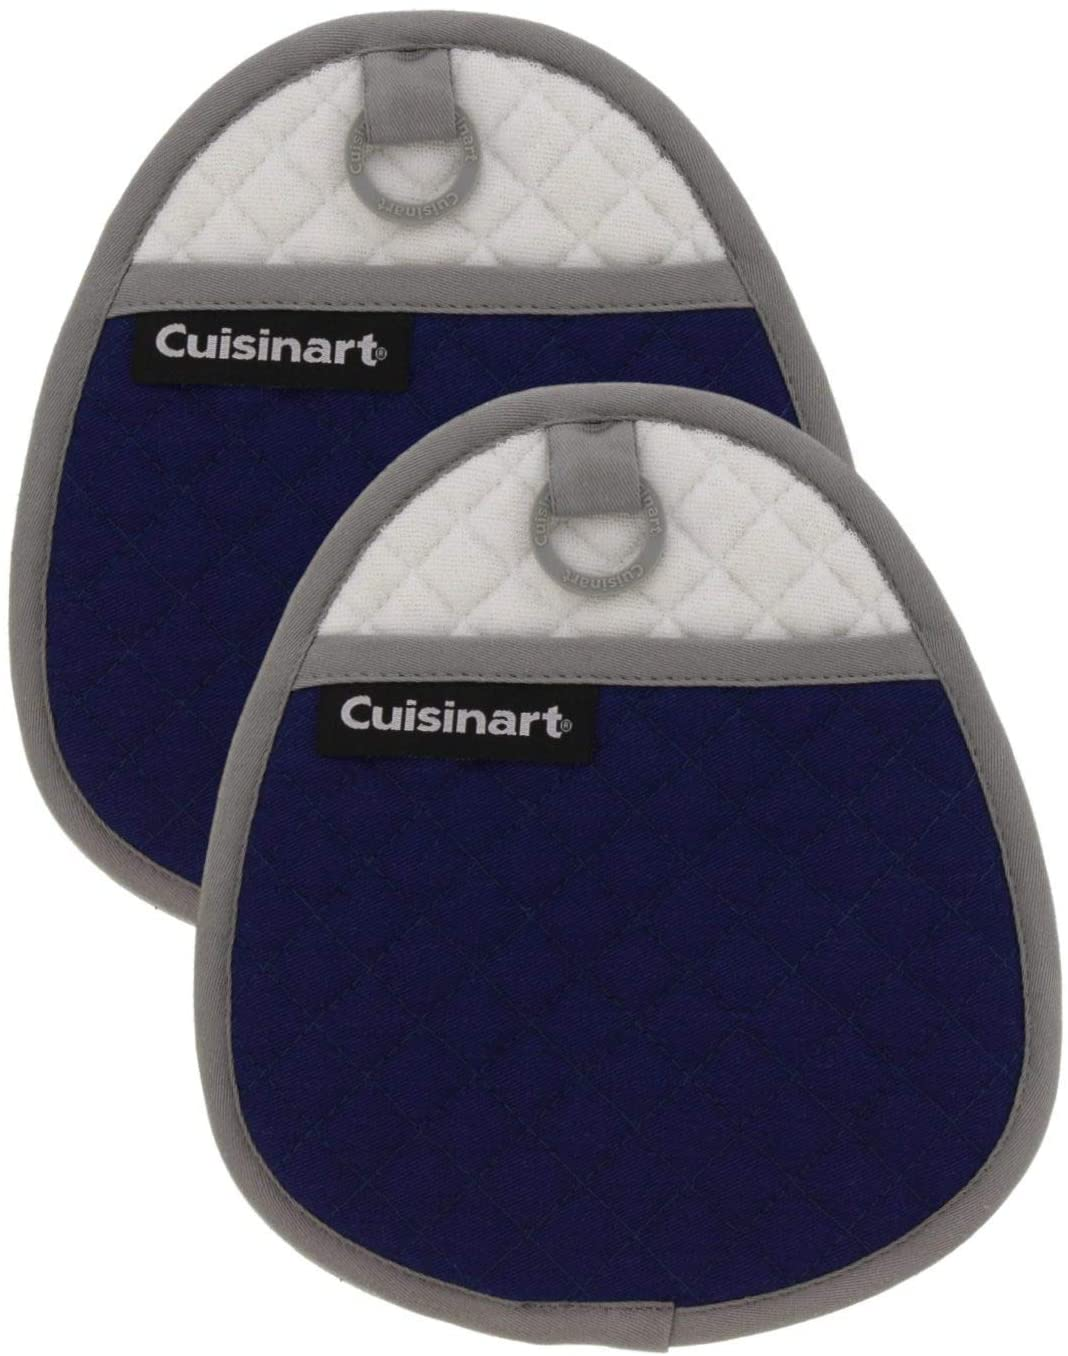 Cuisinart Quilted Silicone Pot Holders and Oven Mitts with Soft Insulated Pockets, 2pk - Heat Resistant Hot Pads, Potholder, Trivets with Non-Slip Grip to Safely Handle Hot Cookware - Navy Aura